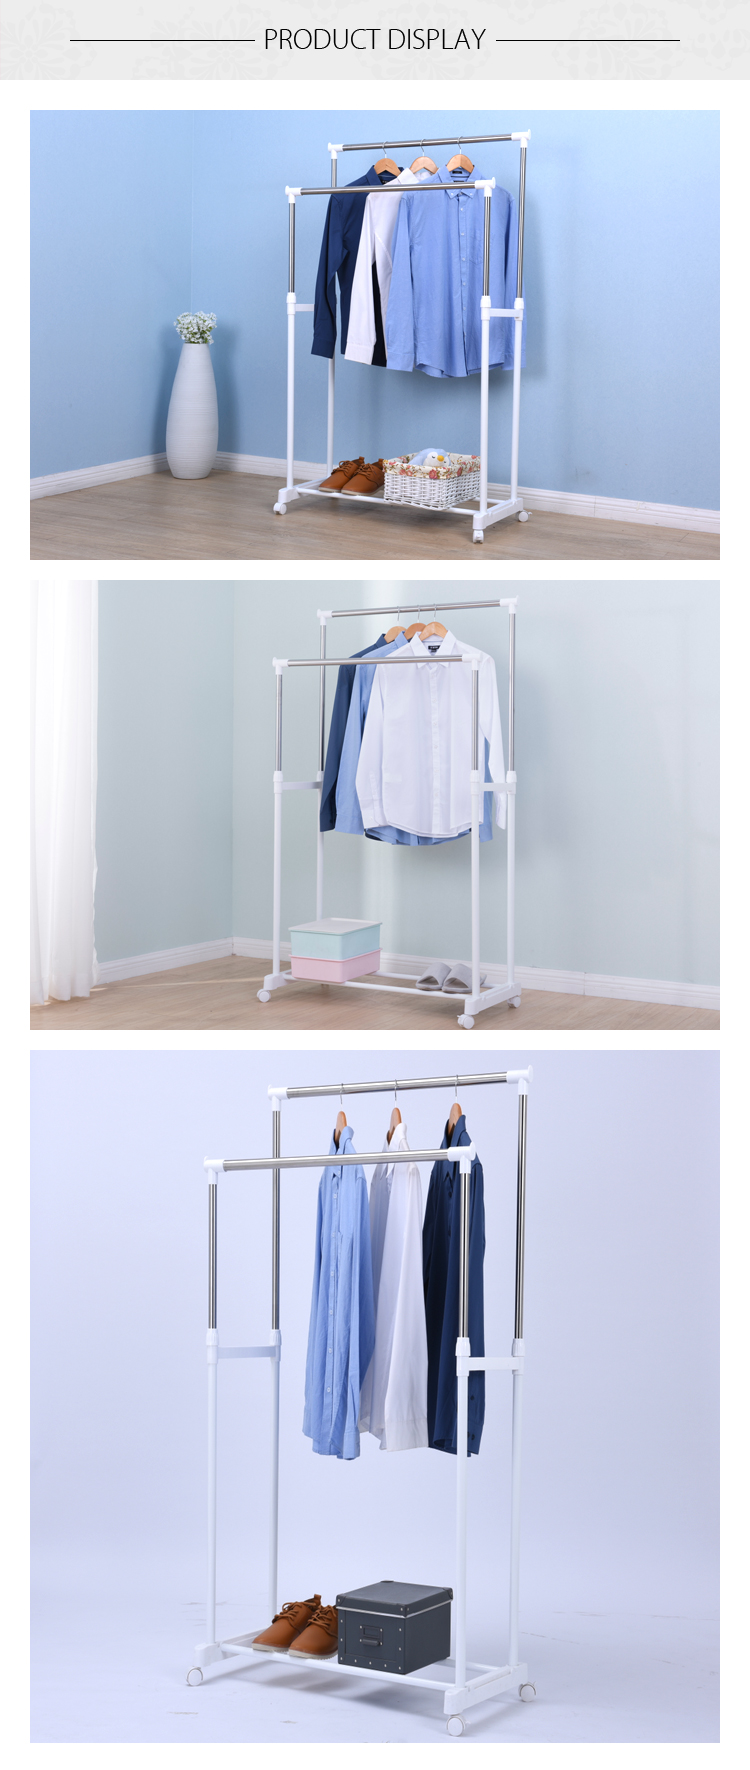 Slap Up Foldable Cloth Large Drying Racks For Laundry Room Clothes